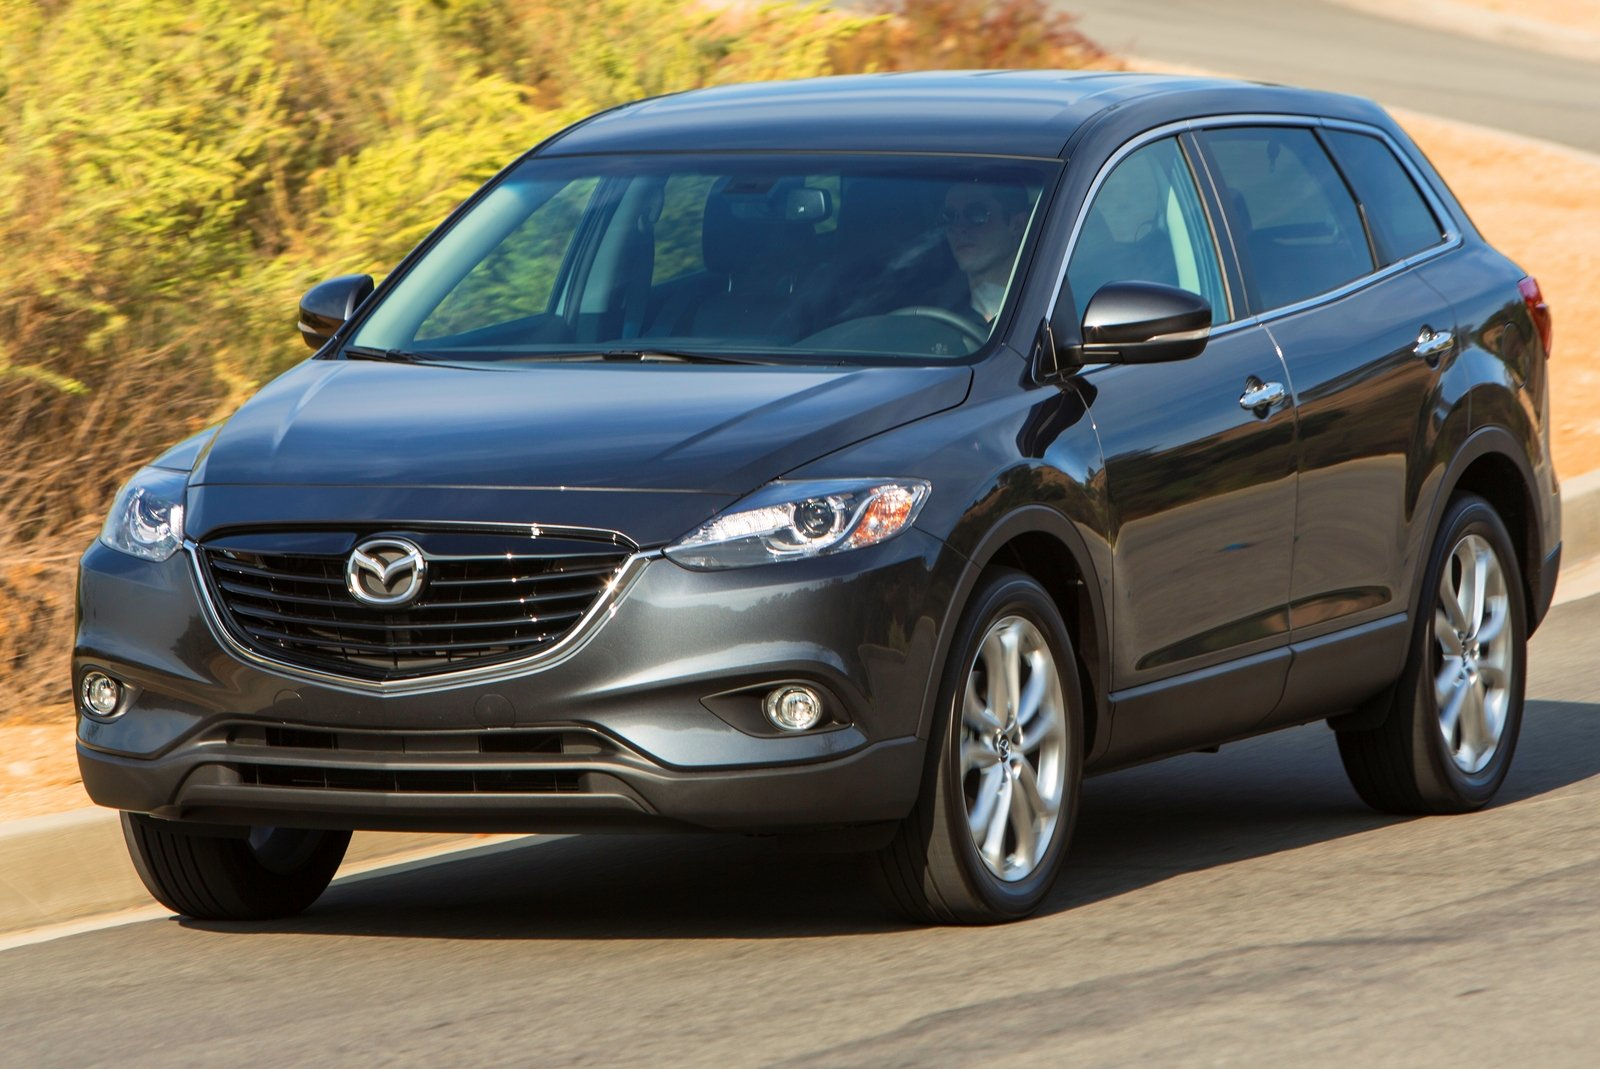 2013 mazda cx 9 review top speed. Black Bedroom Furniture Sets. Home Design Ideas